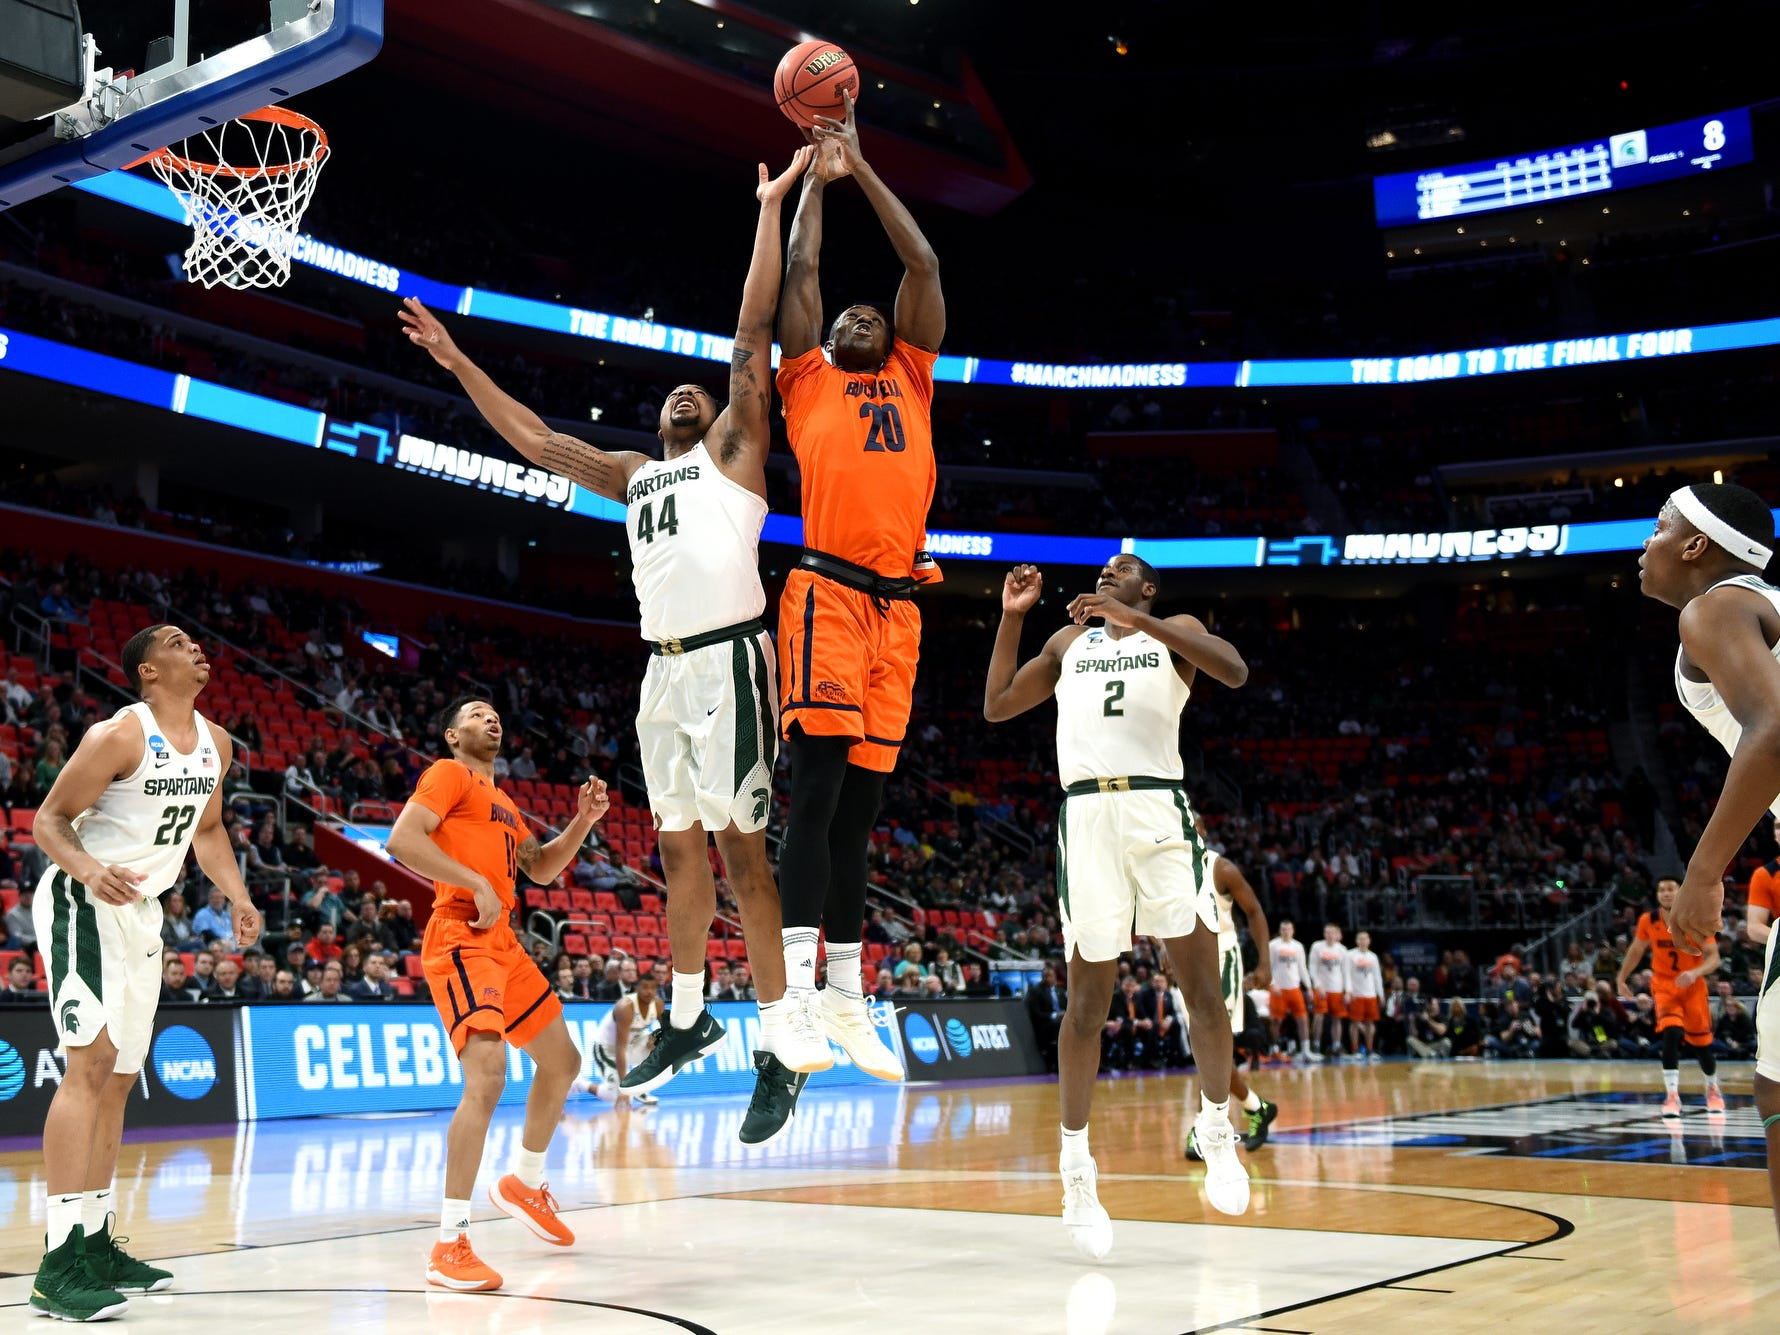 Michigan State's Nick Ward, left, and Bucknell's Nana Foulland, right, go for a rebound during the first half on Friday, March 16, 2018, at the Little Caesars Arena in Detroit.